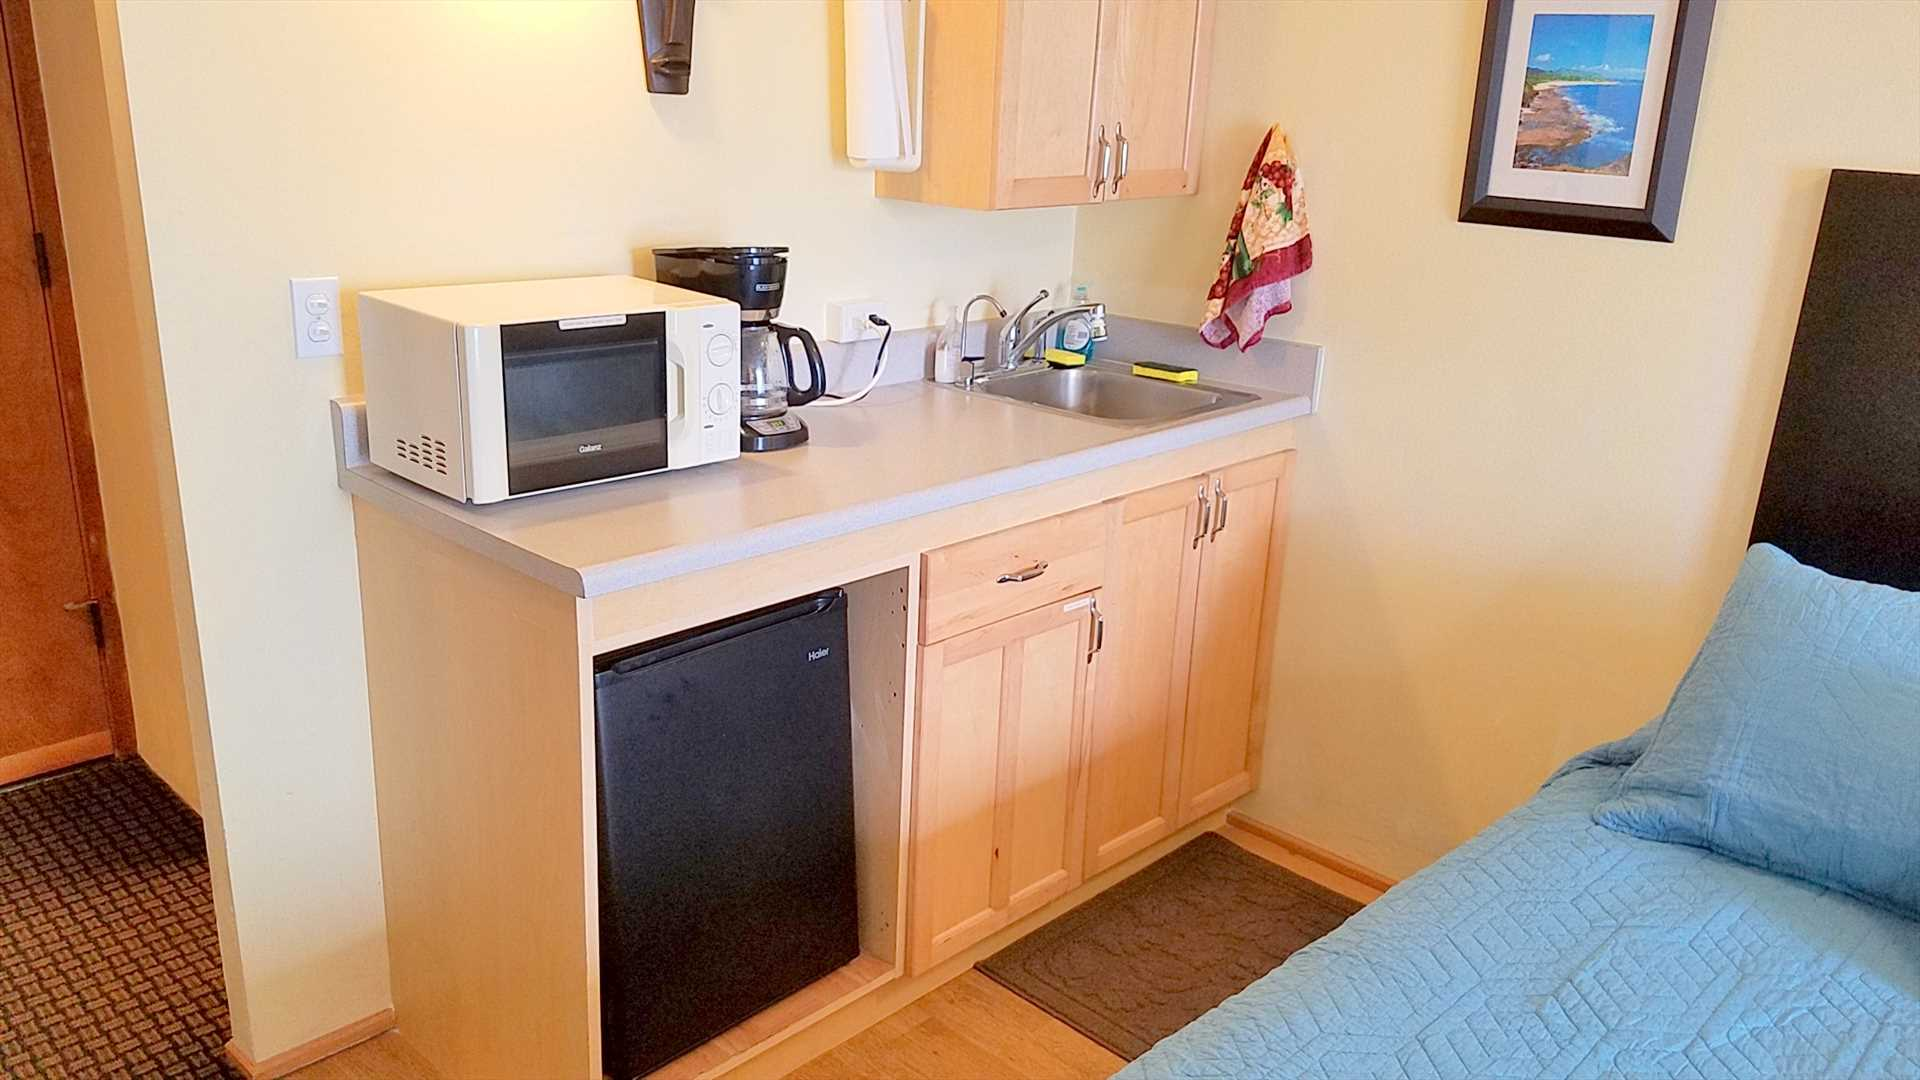 The full kitchenette includes a microwave, small refrigerator, water filter, coffee maker, hot plate (in the cabinet), toaster and all utensils.  There is also an iron and ironing board in the closet.